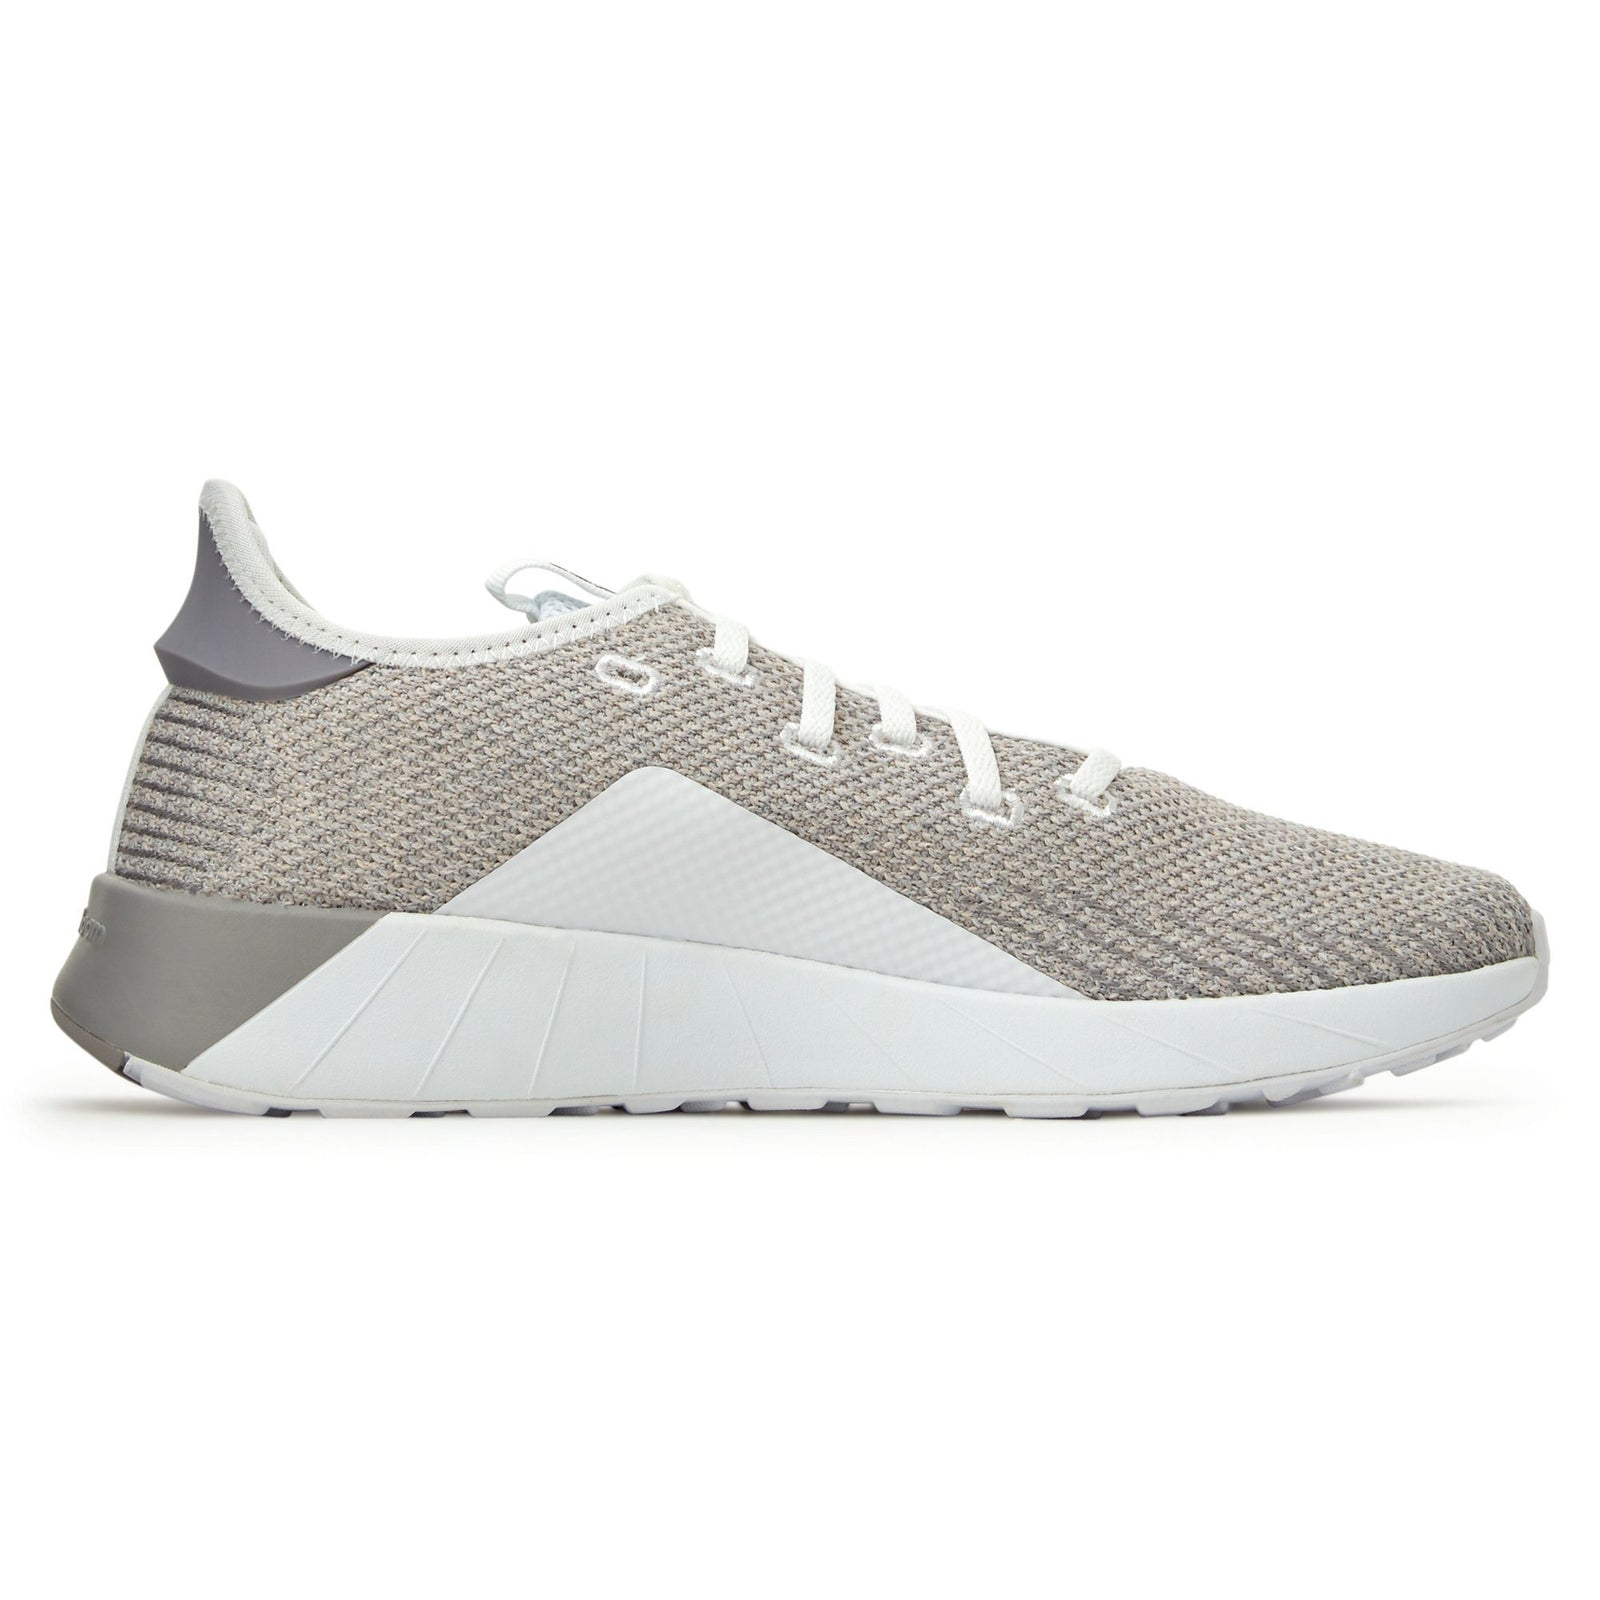 Adidas Women s Questar X BYD Shoes - Ice Purple   Cloud White   Light  Granite eaa76e024